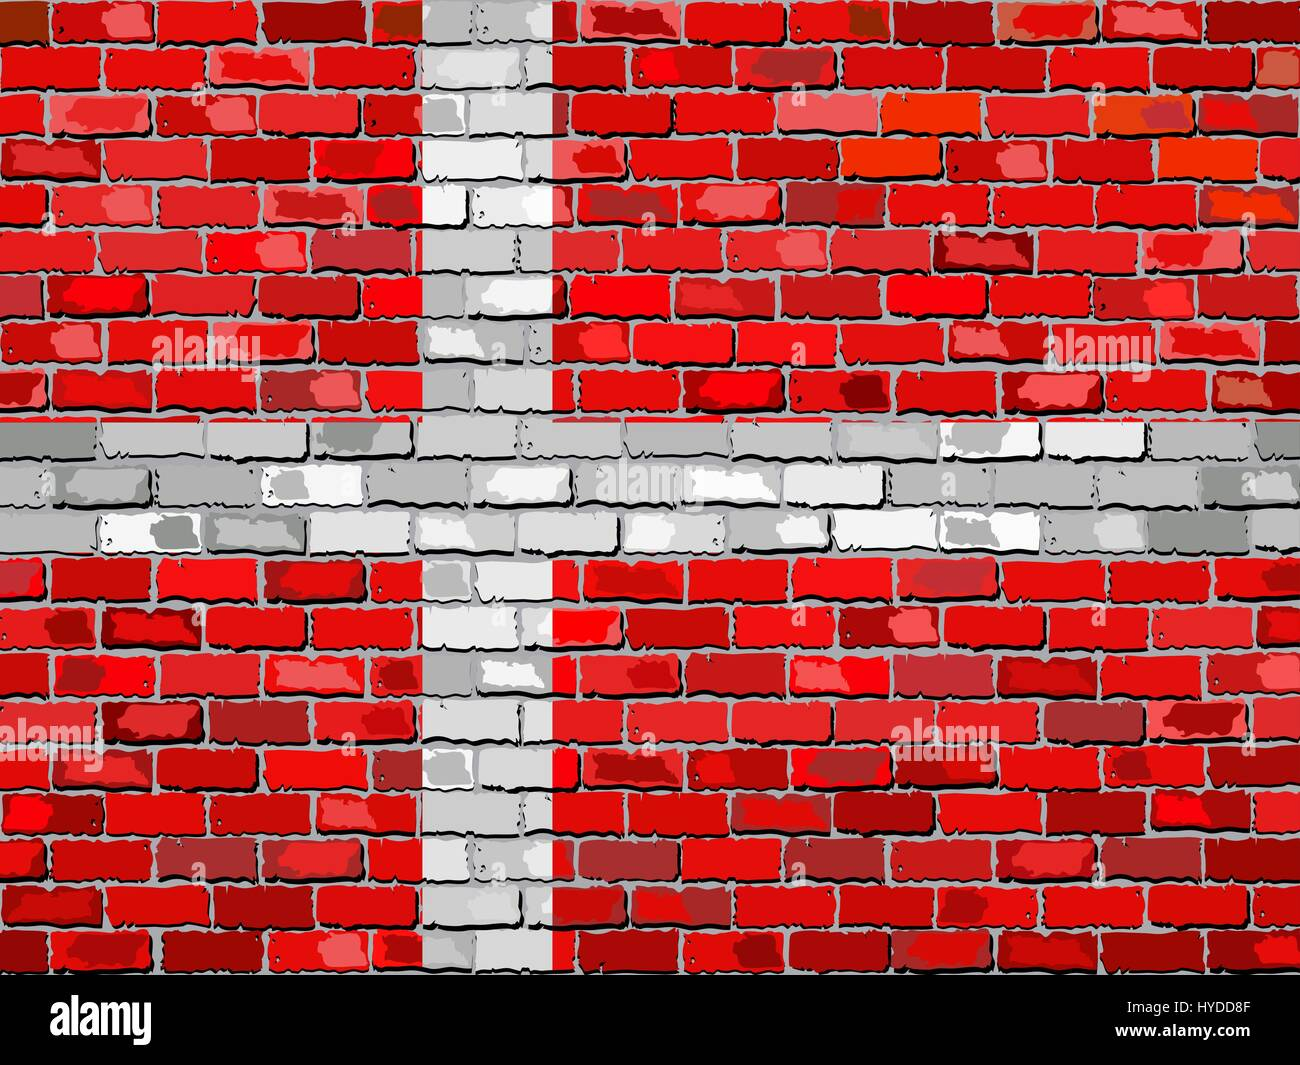 Flag of Denmark on a brick wall - Illustration,  Danish flag on brick textured background,  Abstract grunge mosaic - Stock Image